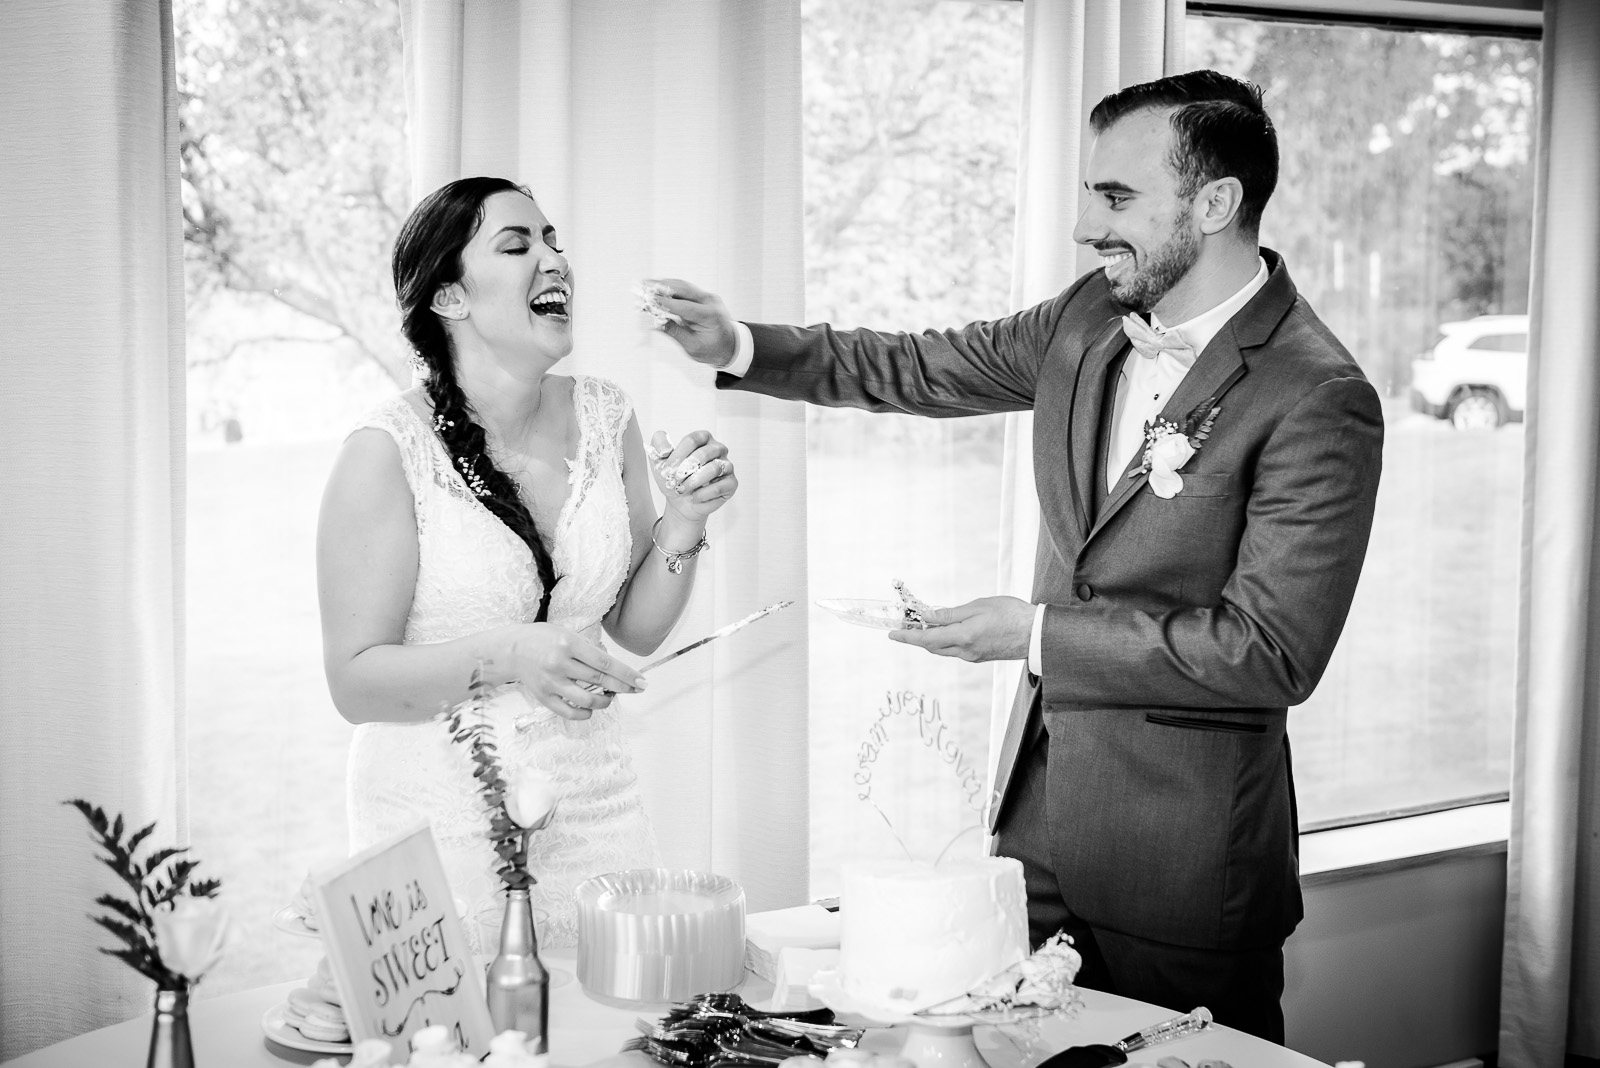 Eric_and_Christy_Photography_Blog_2017_Best_Moments-13